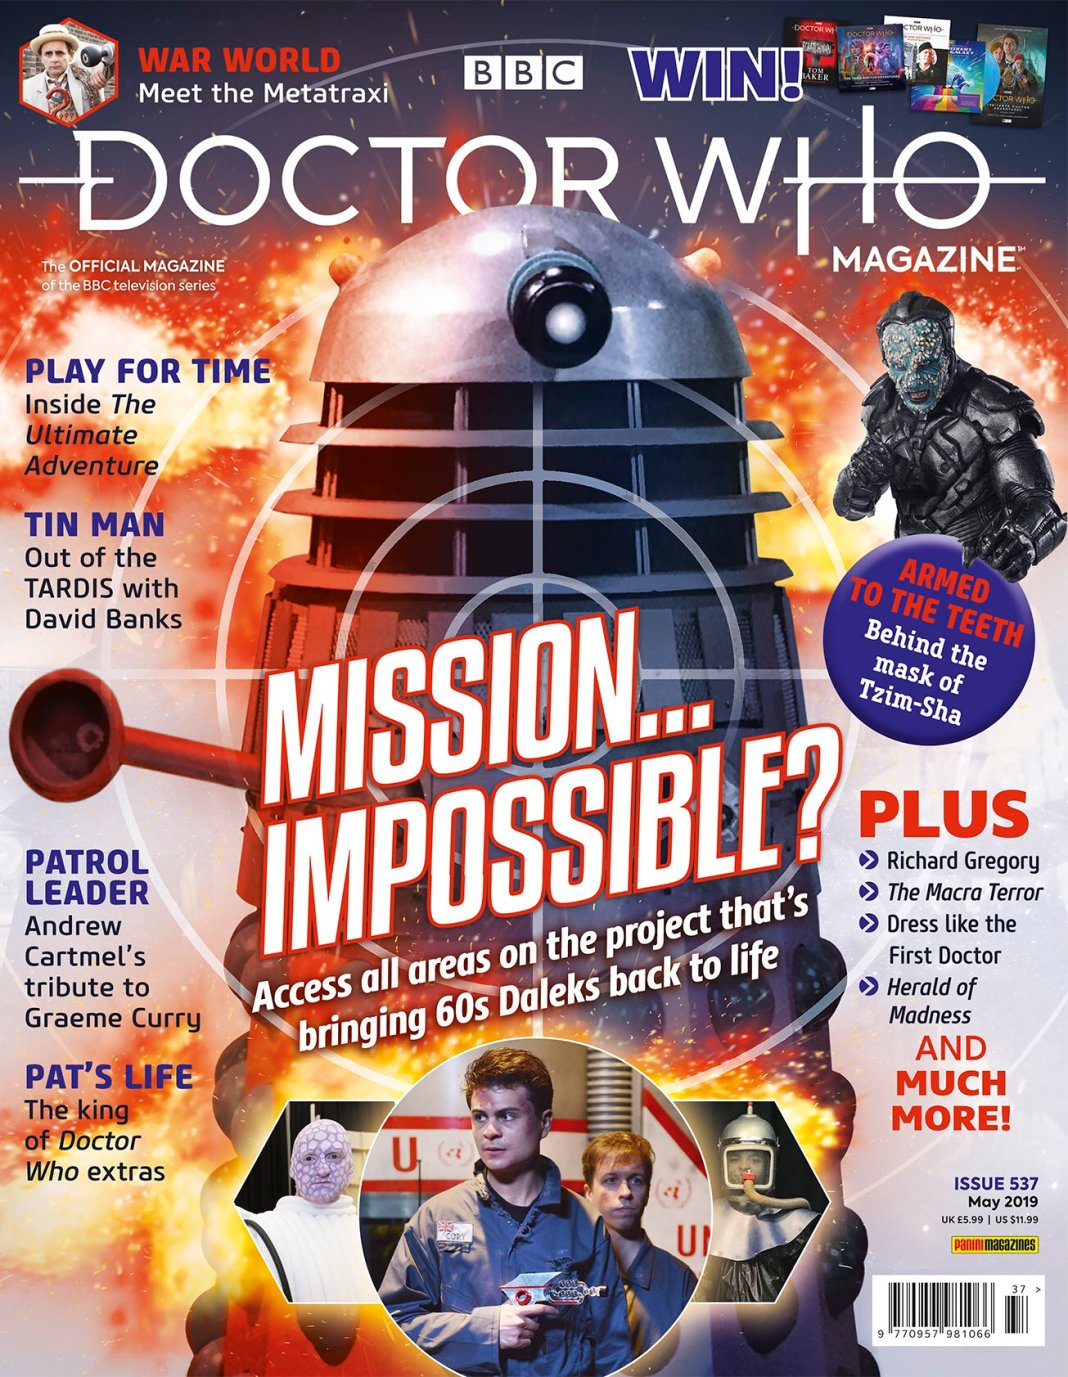 Doctor Who Magazine 537 Cover (c) Panini